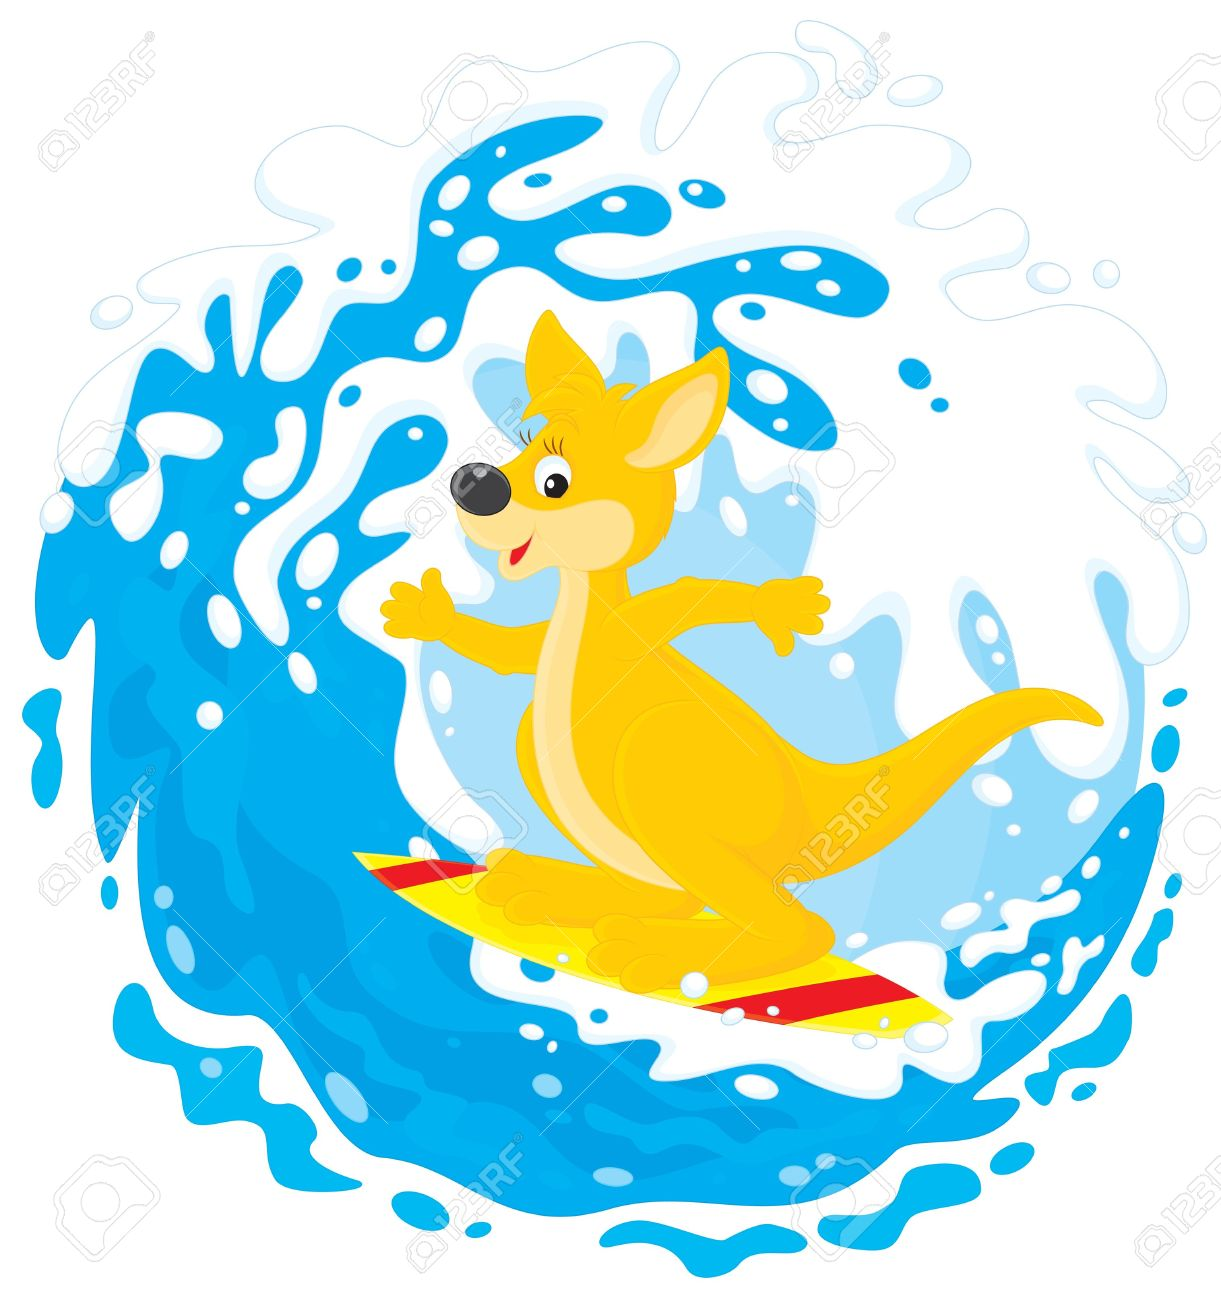 Kangaroo Surfer Riding A Big Ocean Wave Royalty Free Cliparts.